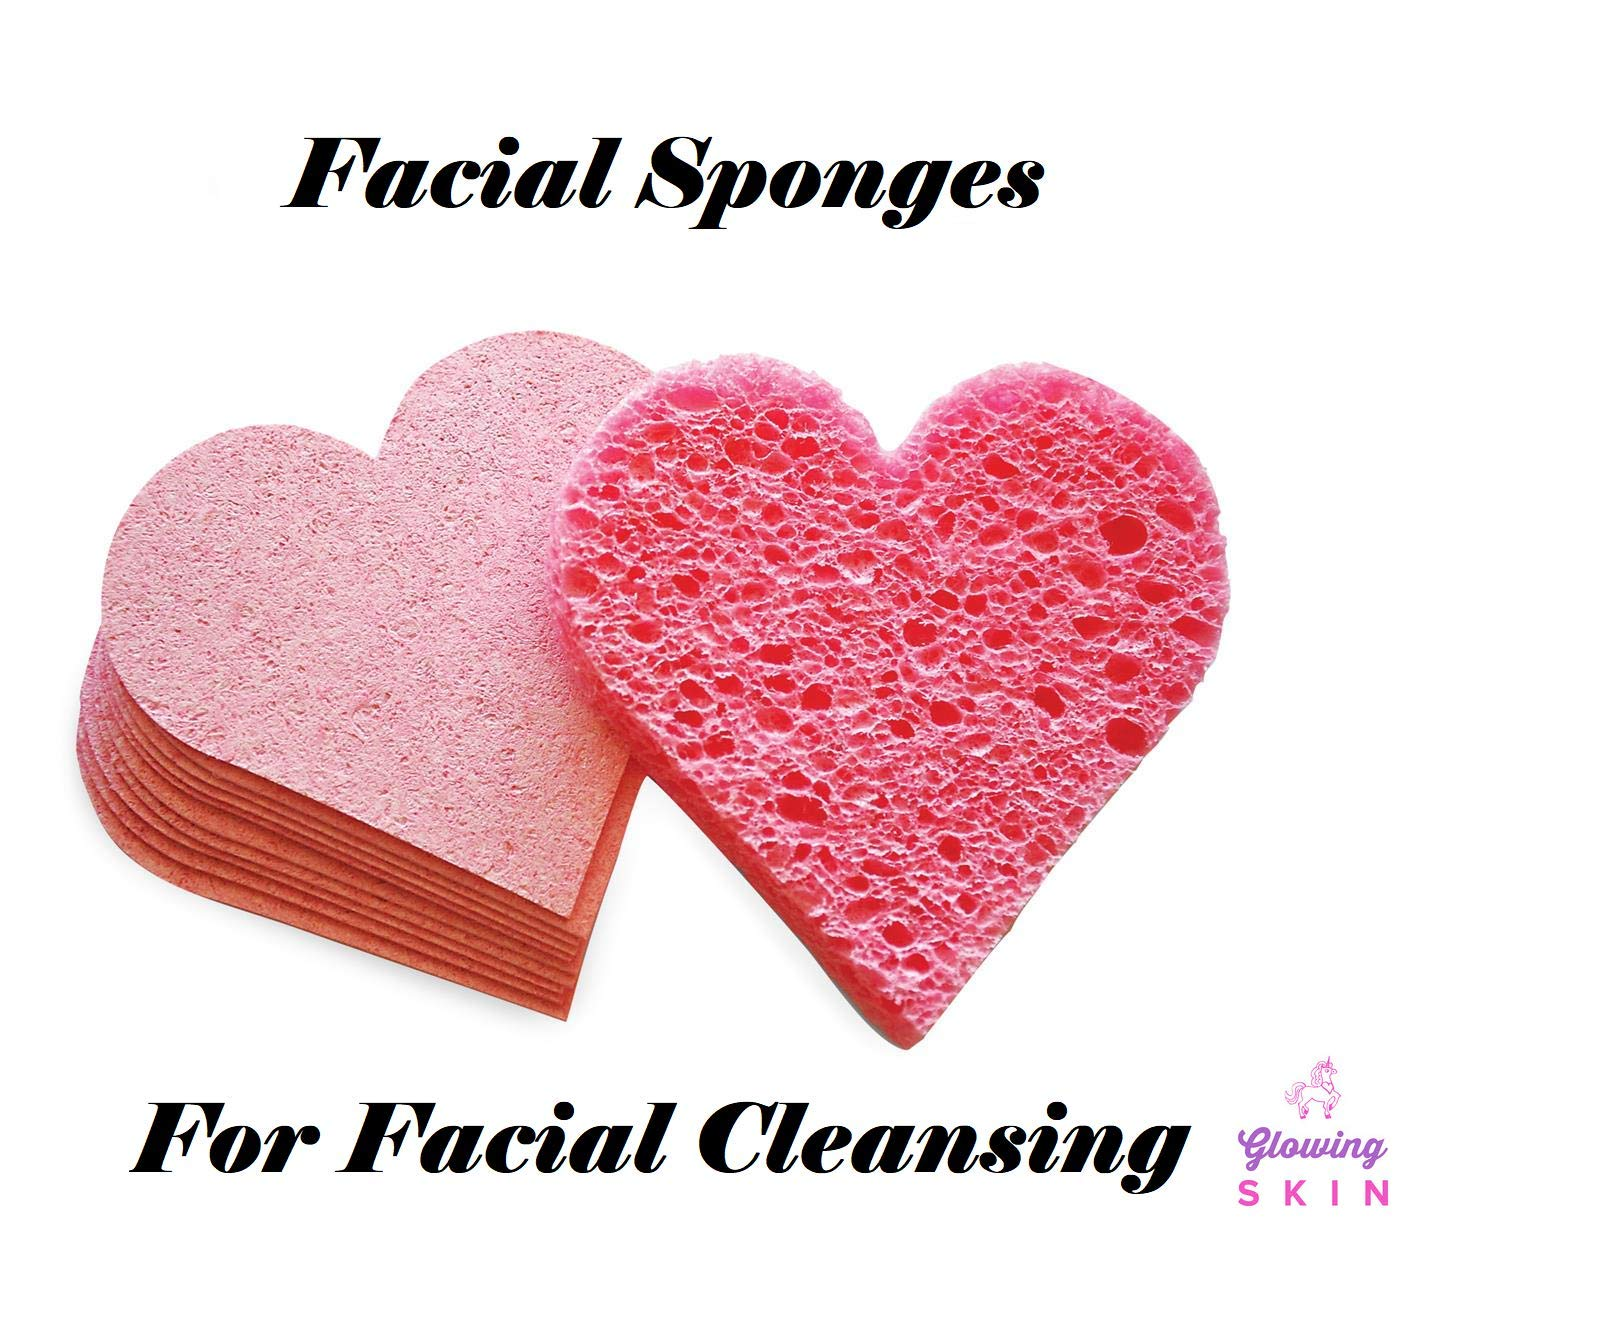 Compressed Facial Sponges Natural Cellulose Pink Heart Sponges (100 PACK)